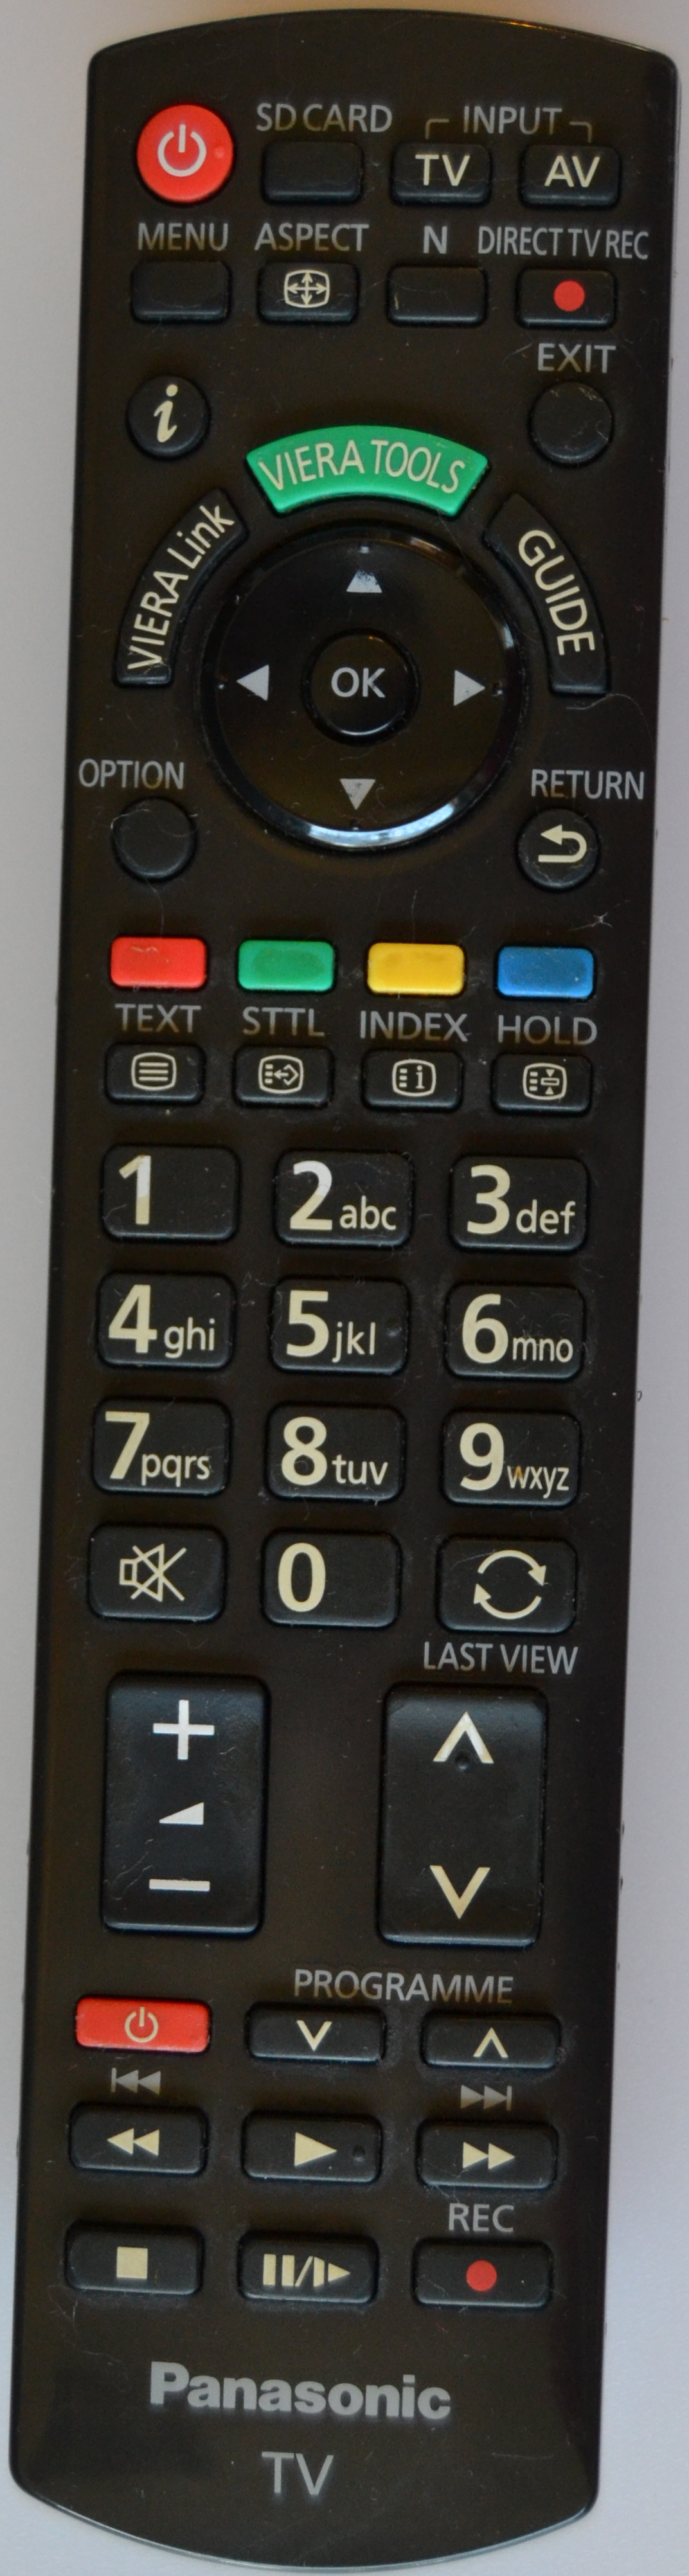 RC/N2QAYB/PAN/5  REMOTE CONTROL, N2QAYB000487, for ,PANASONIC ,